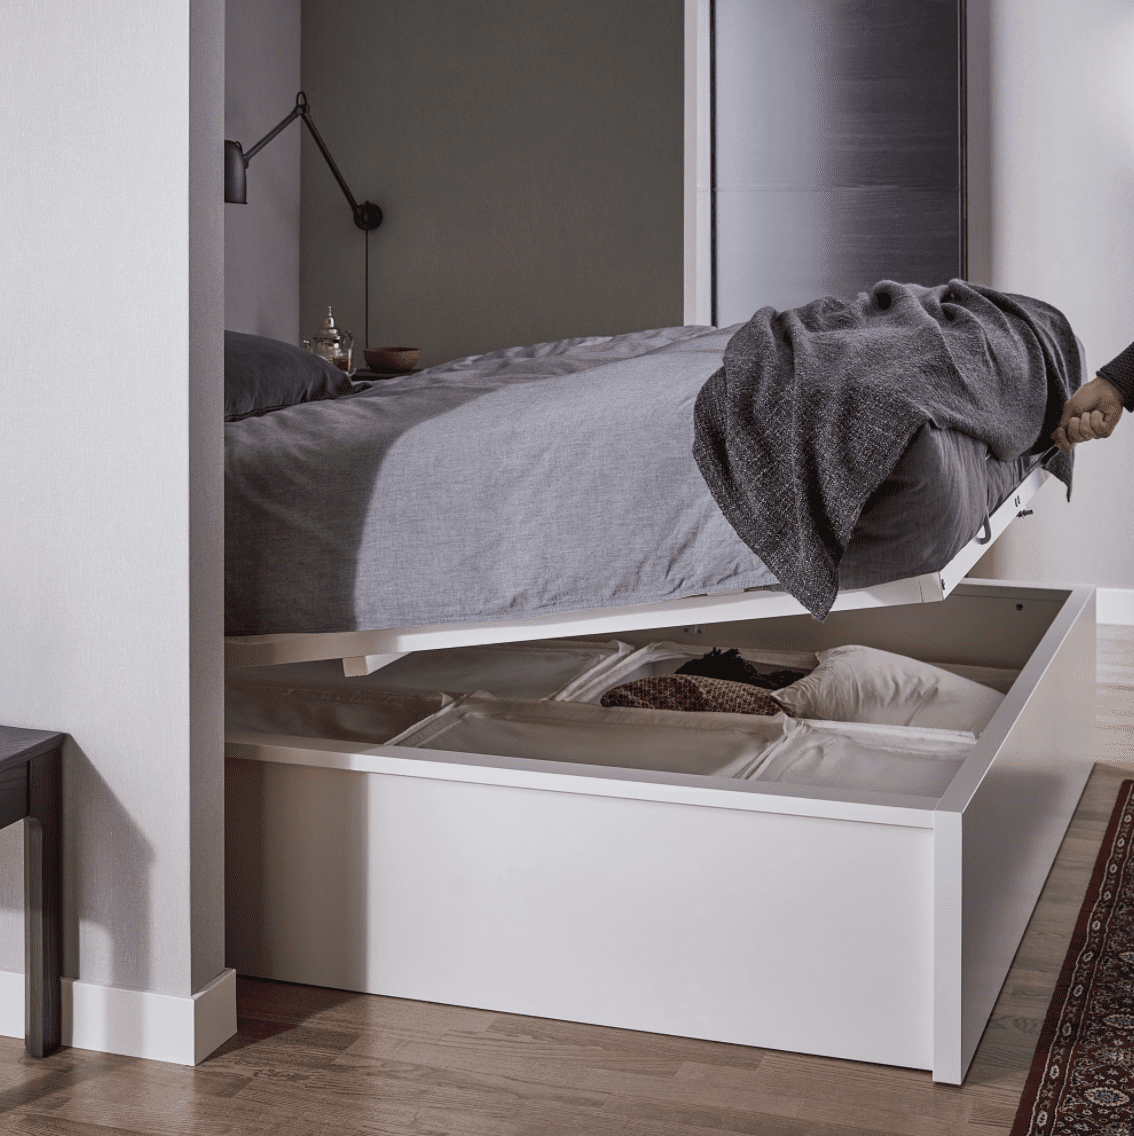 A white platform bed that hinges to reveal storage underneath, which is currently for sale at IKEA